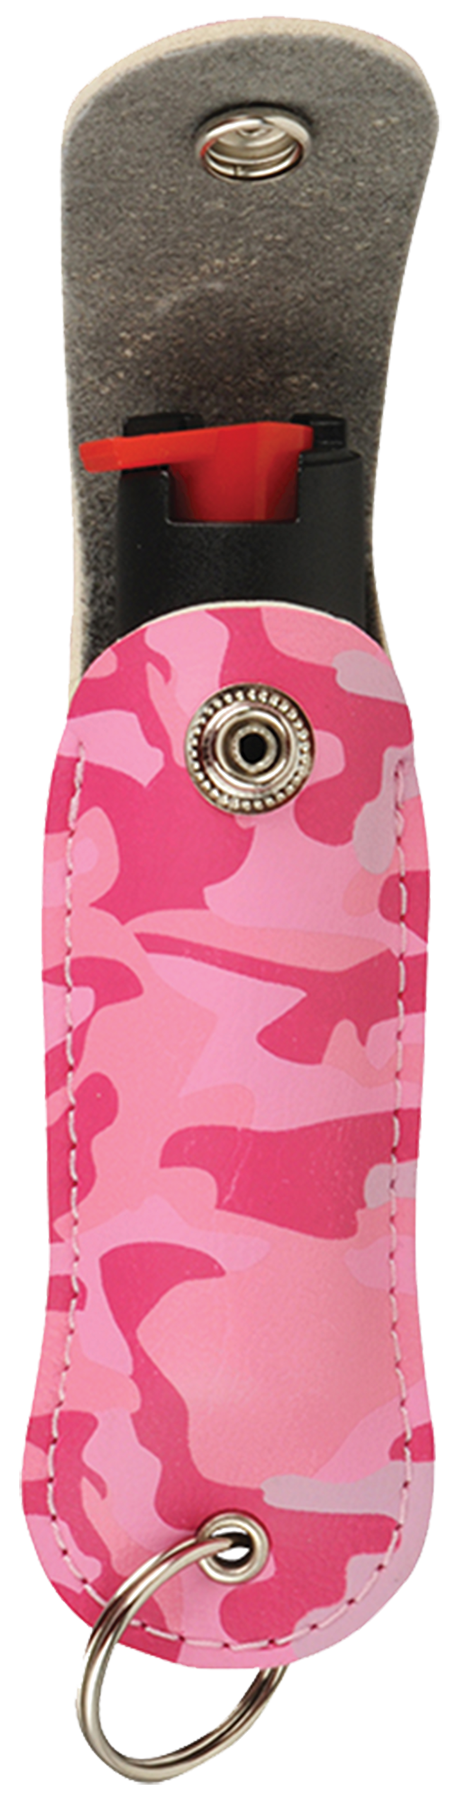 Ruger Personal Defense RKS091P Key Chain Pepper Spray Keychain .388 oz Close Contact Pink